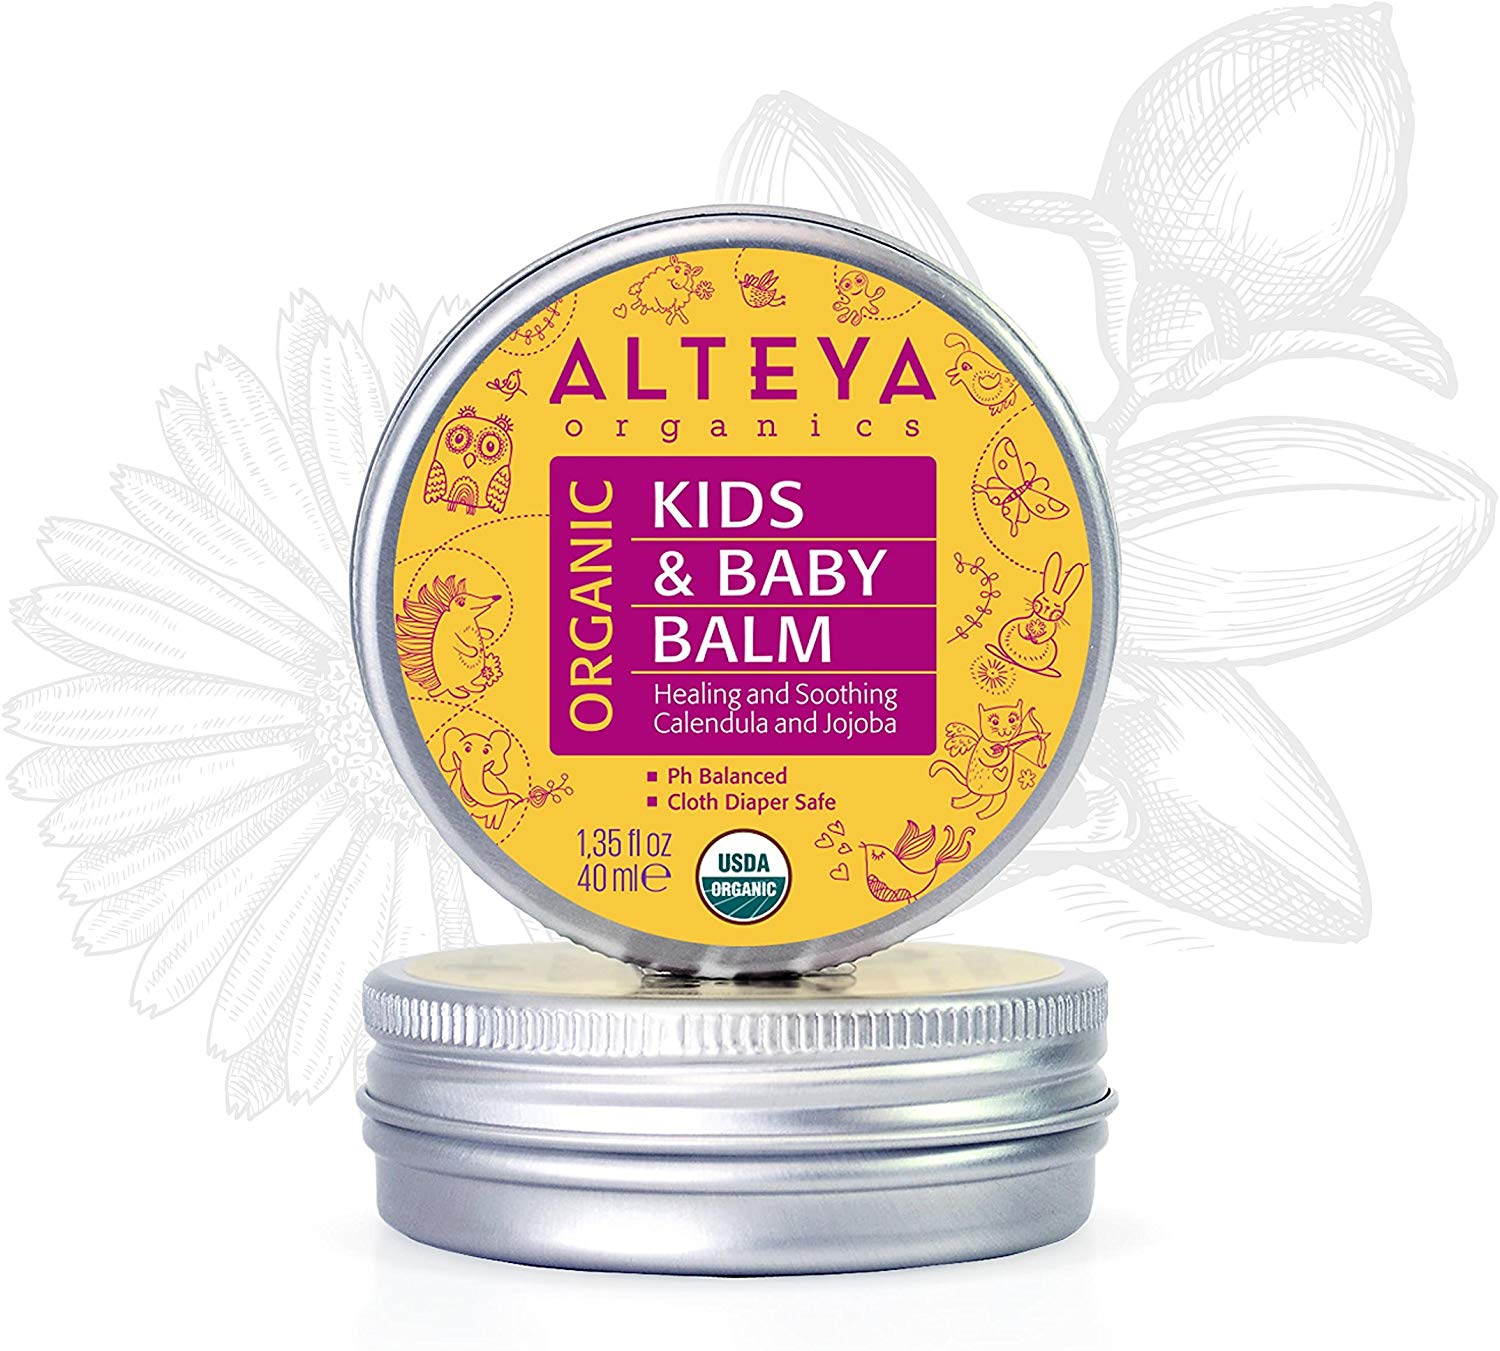 Alteya Kids and Baby Balm